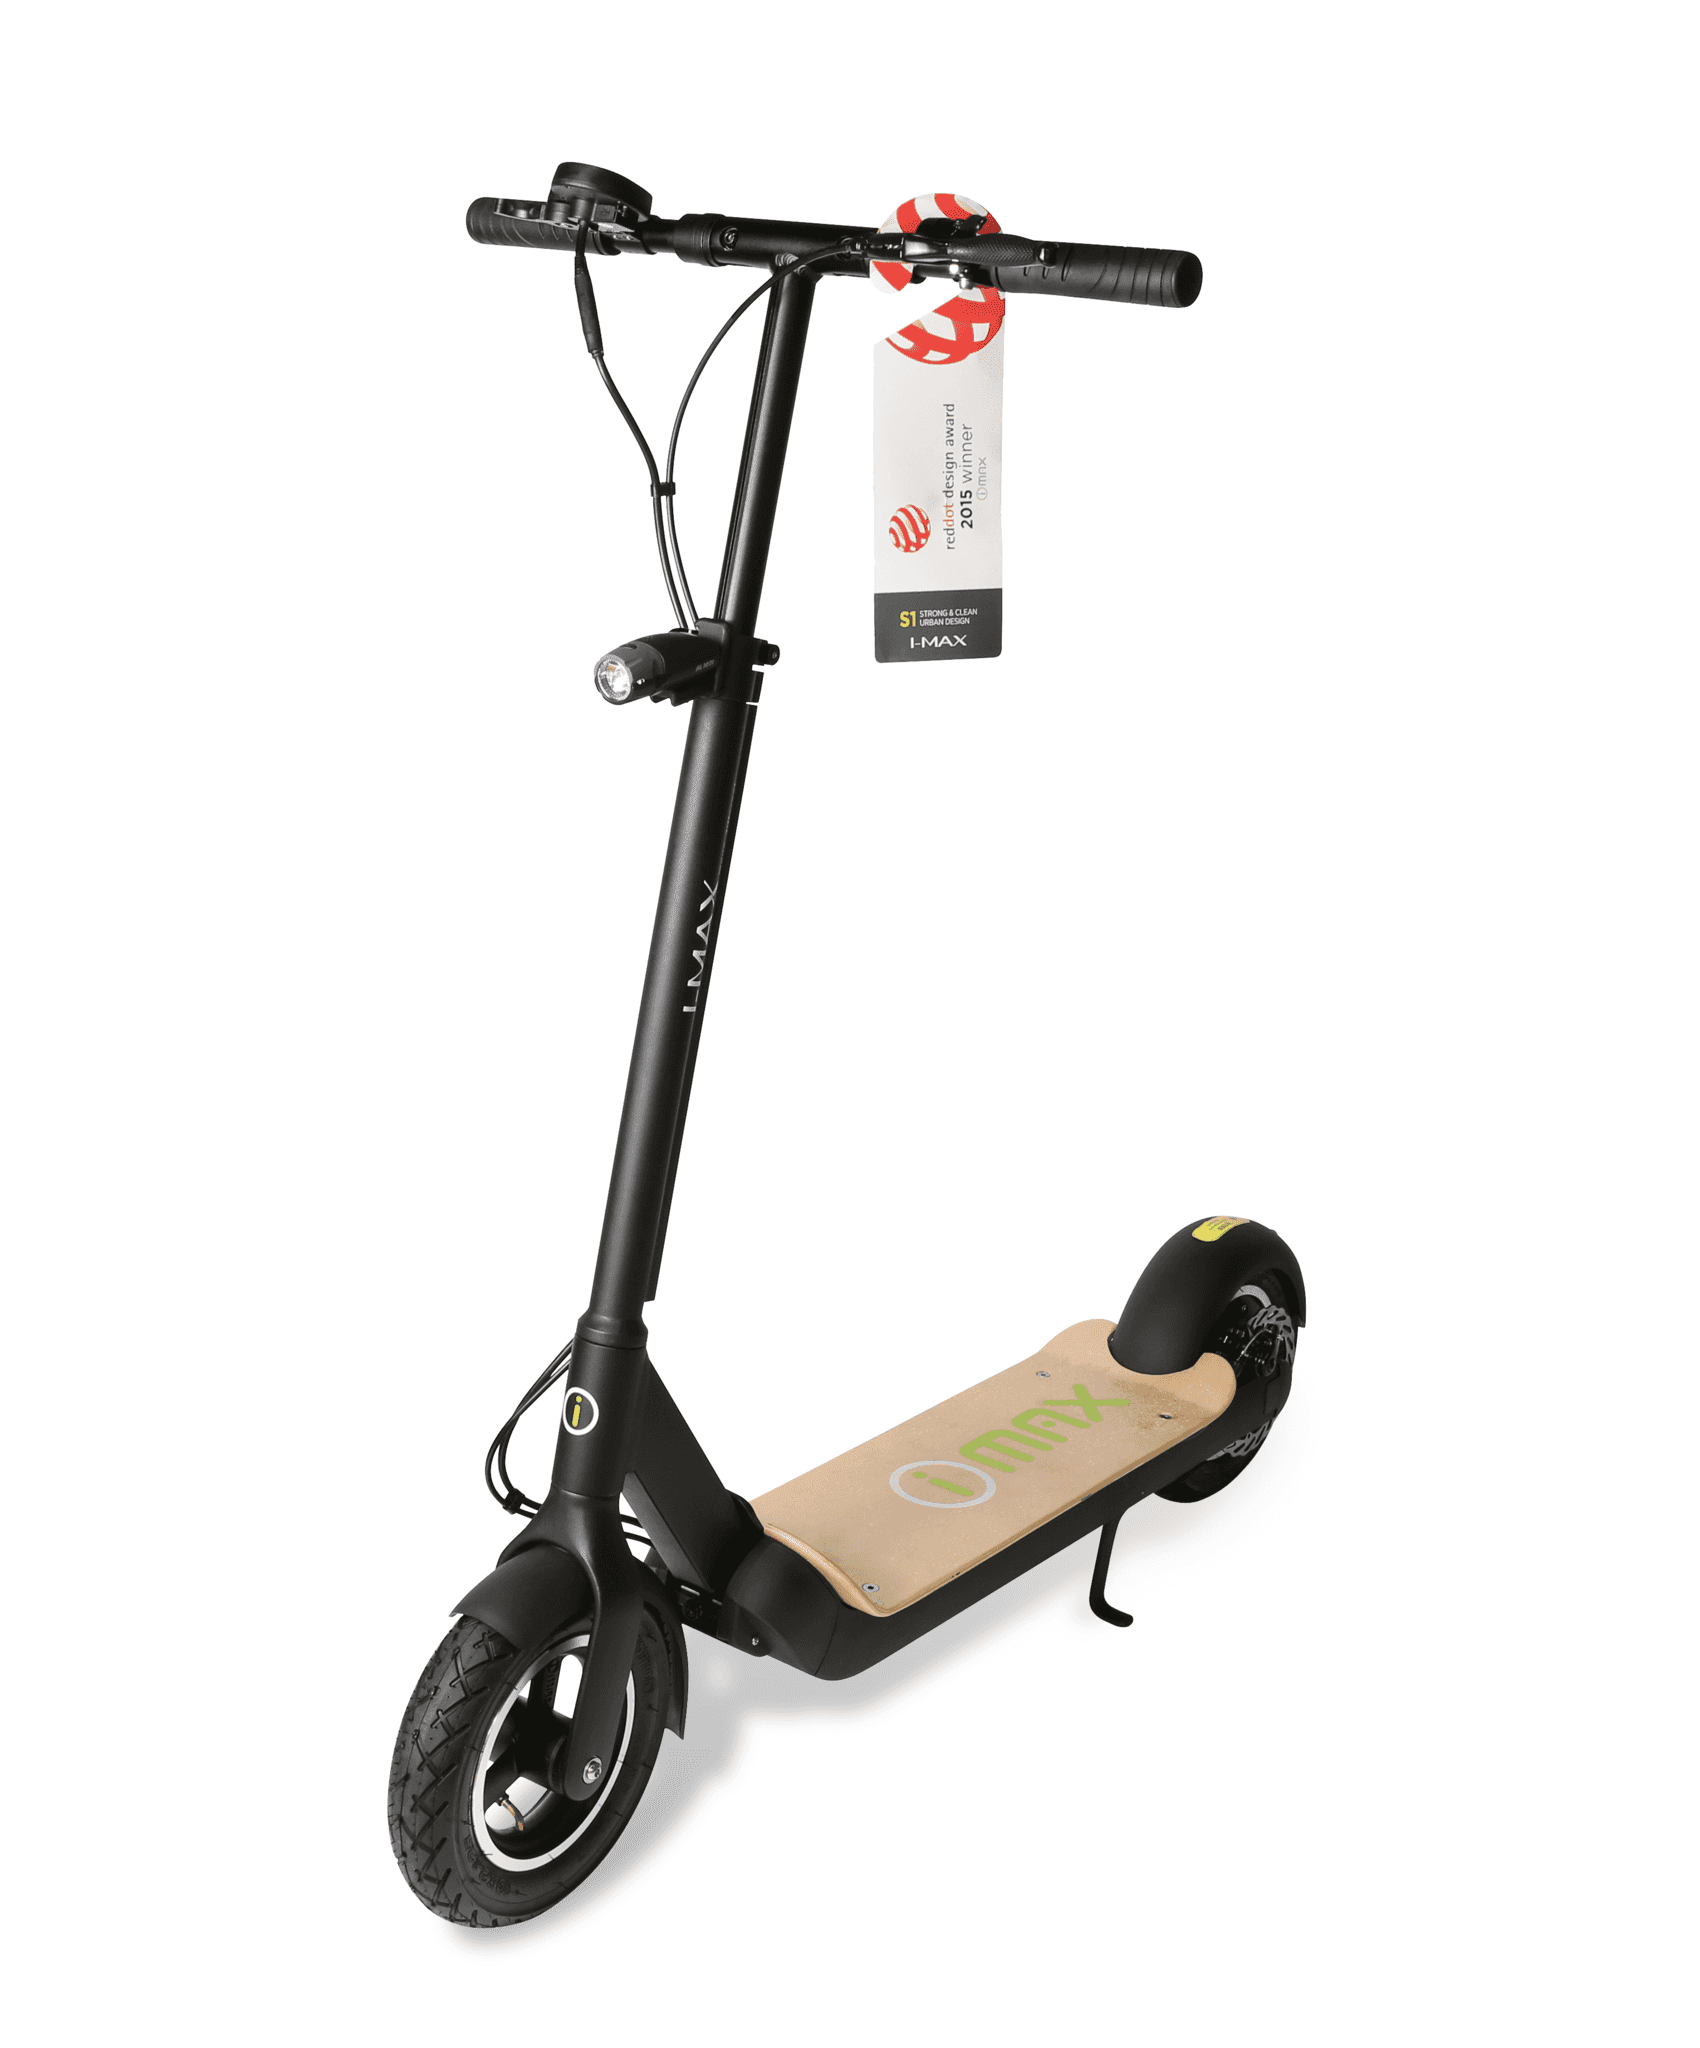 Pre-owned I-Max electric scooter (subject to availability)